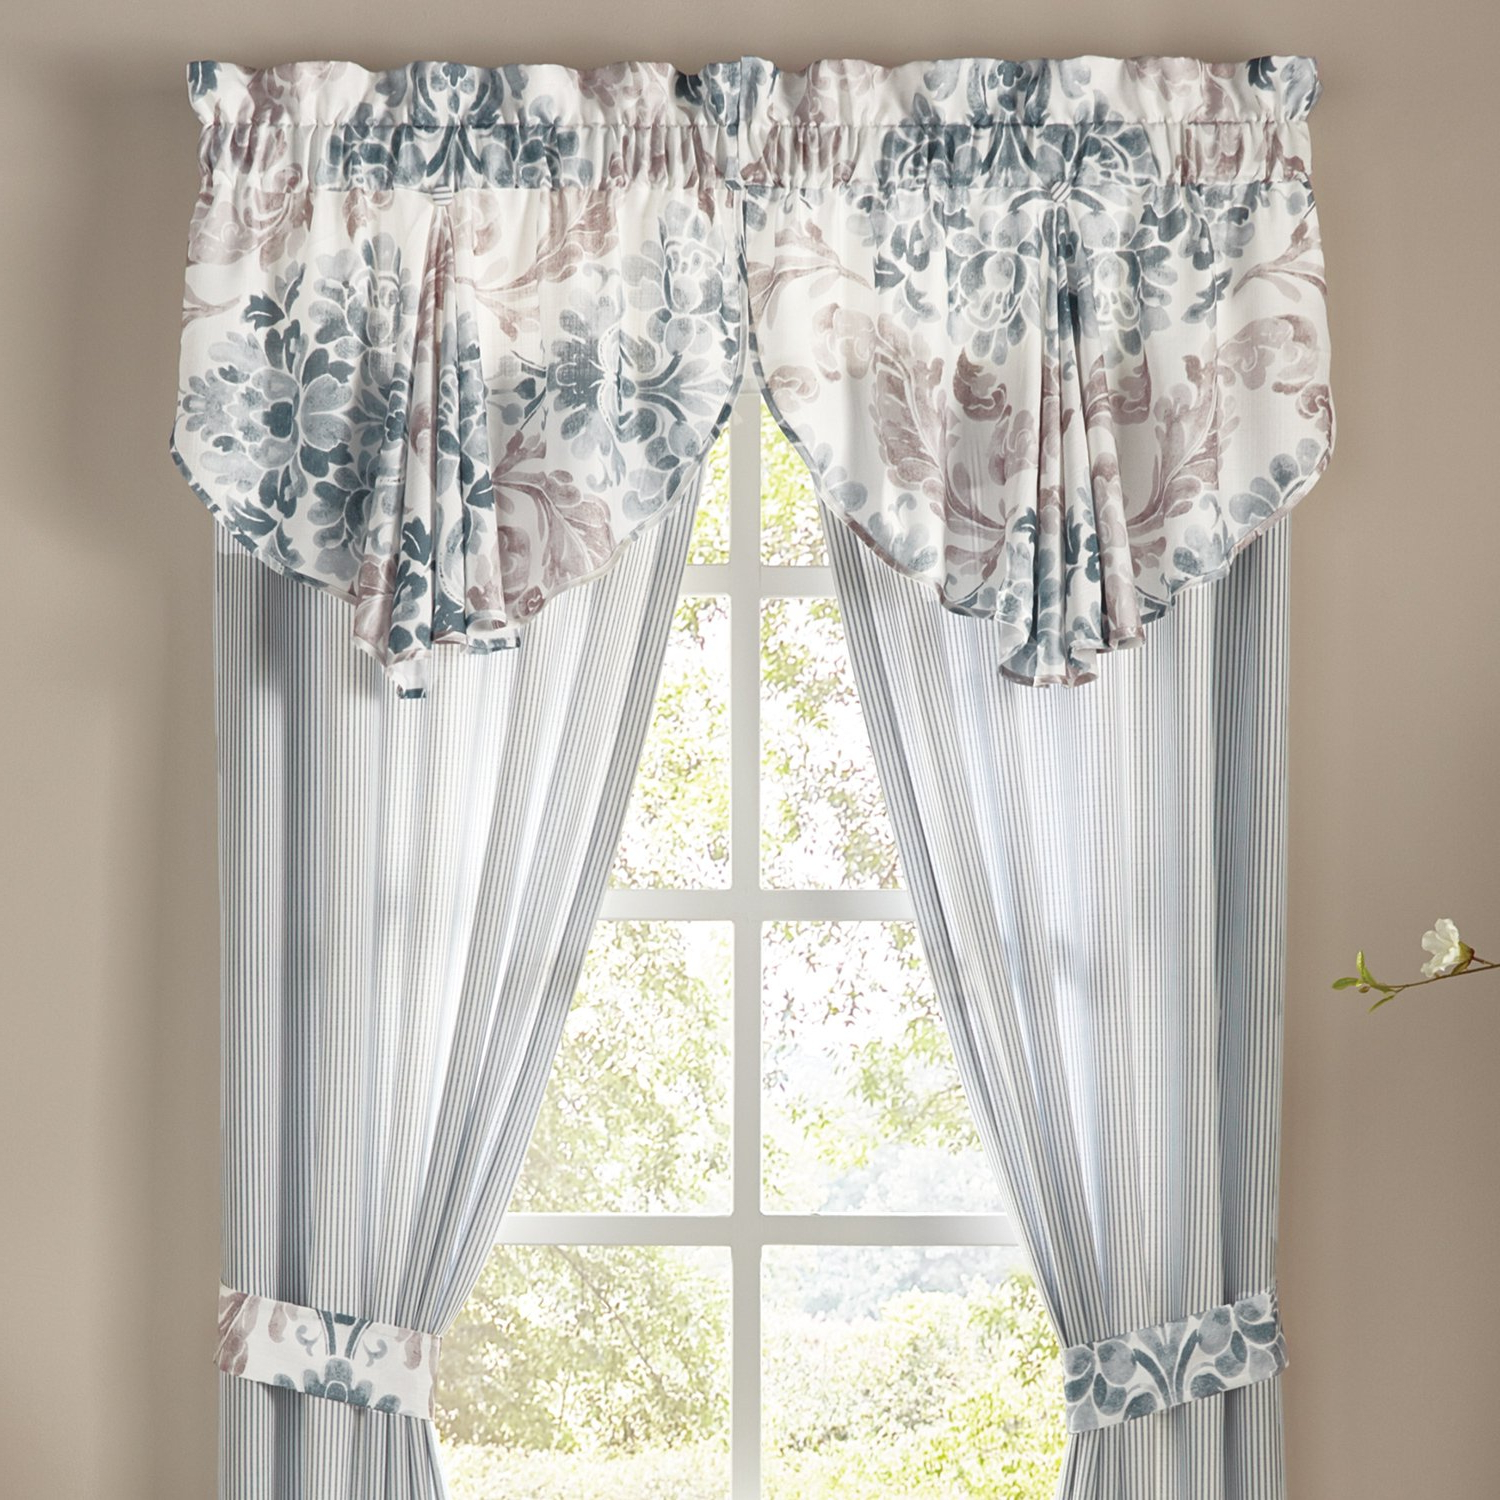 Best And Newest Circle Curtain Valances In Amazon: Croscill Kinsley Circle Valance: Home & Kitchen (View 3 of 20)